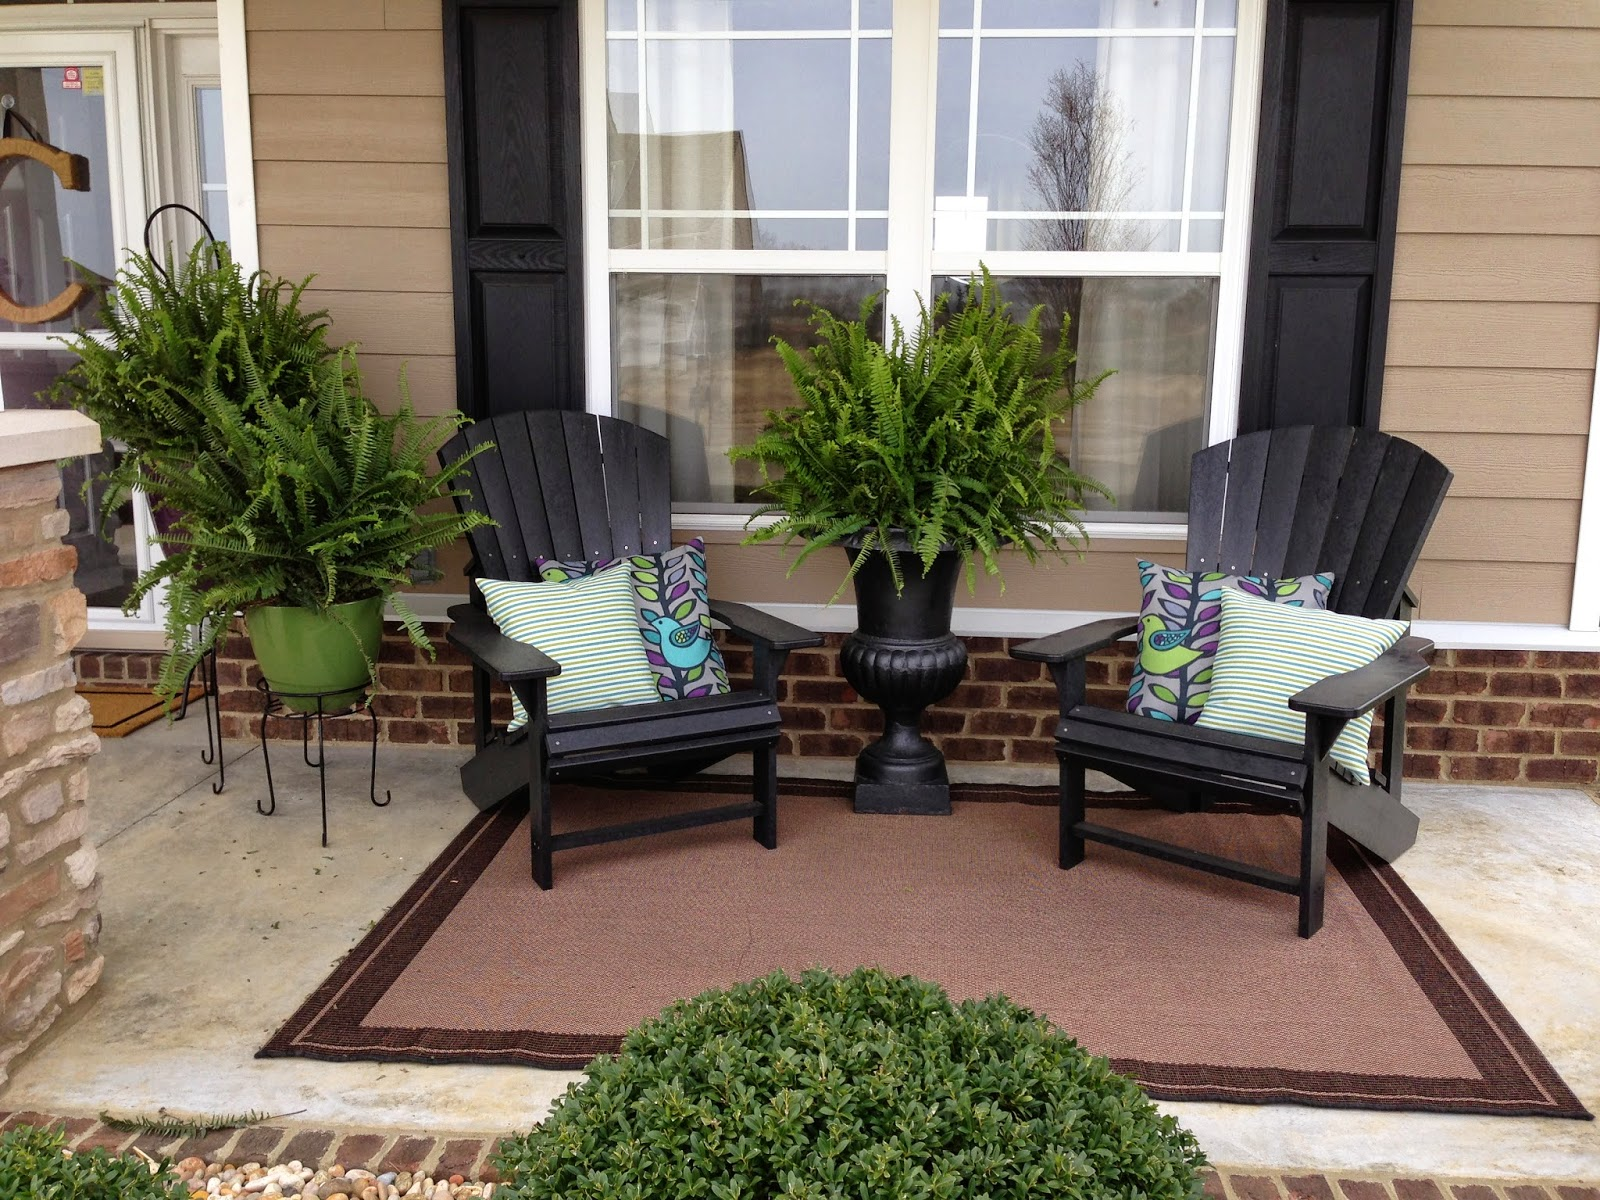 7 front porch decorating ideas pictures for your home On outdoor front porch decor